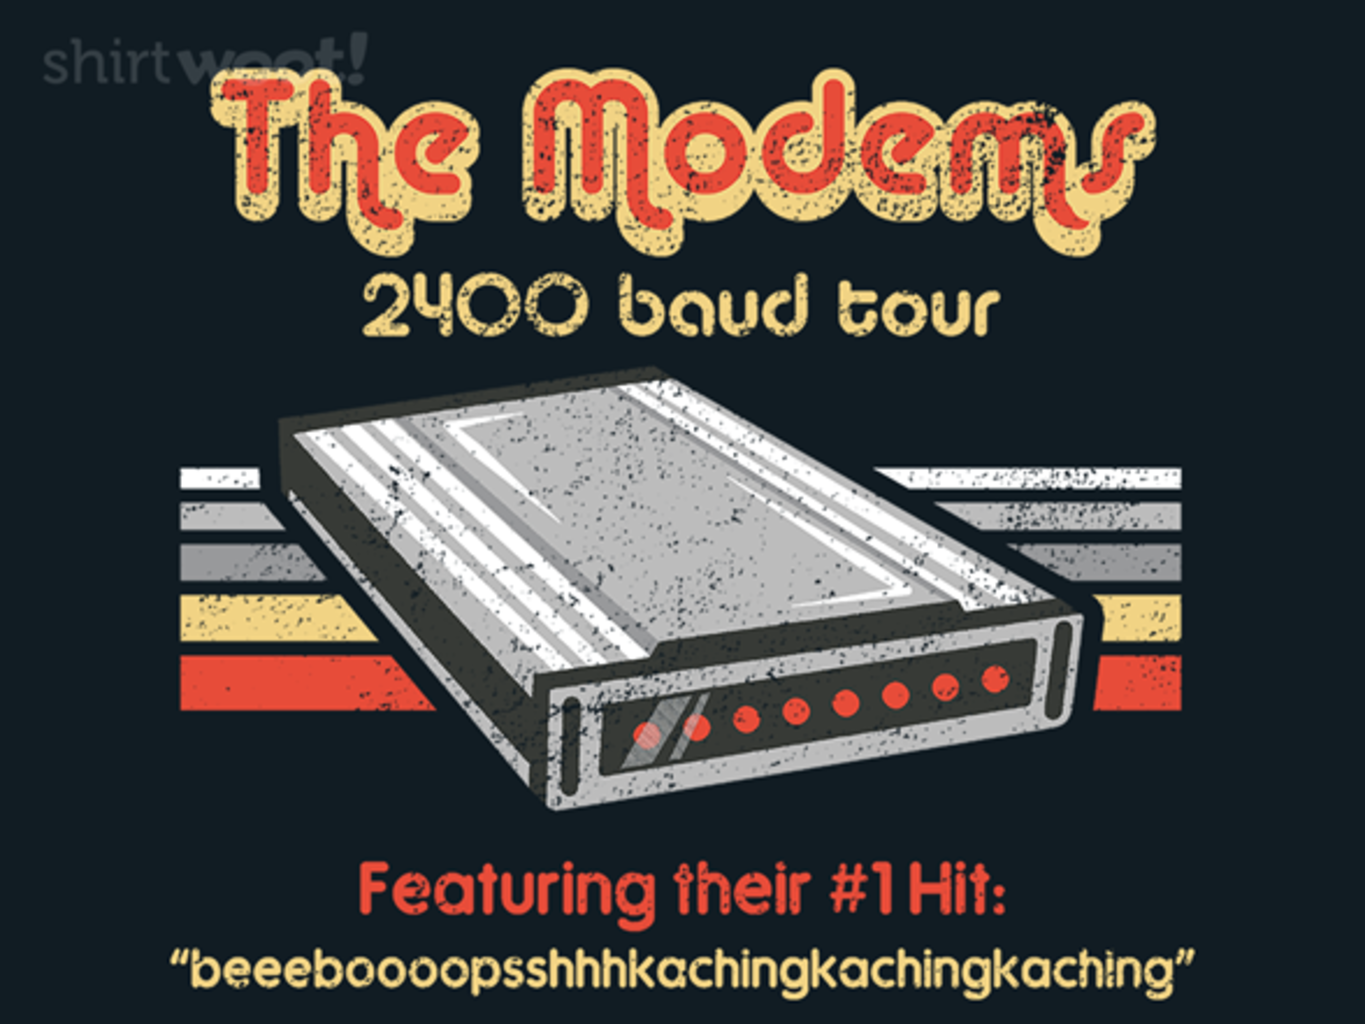 Woot!: The Modems